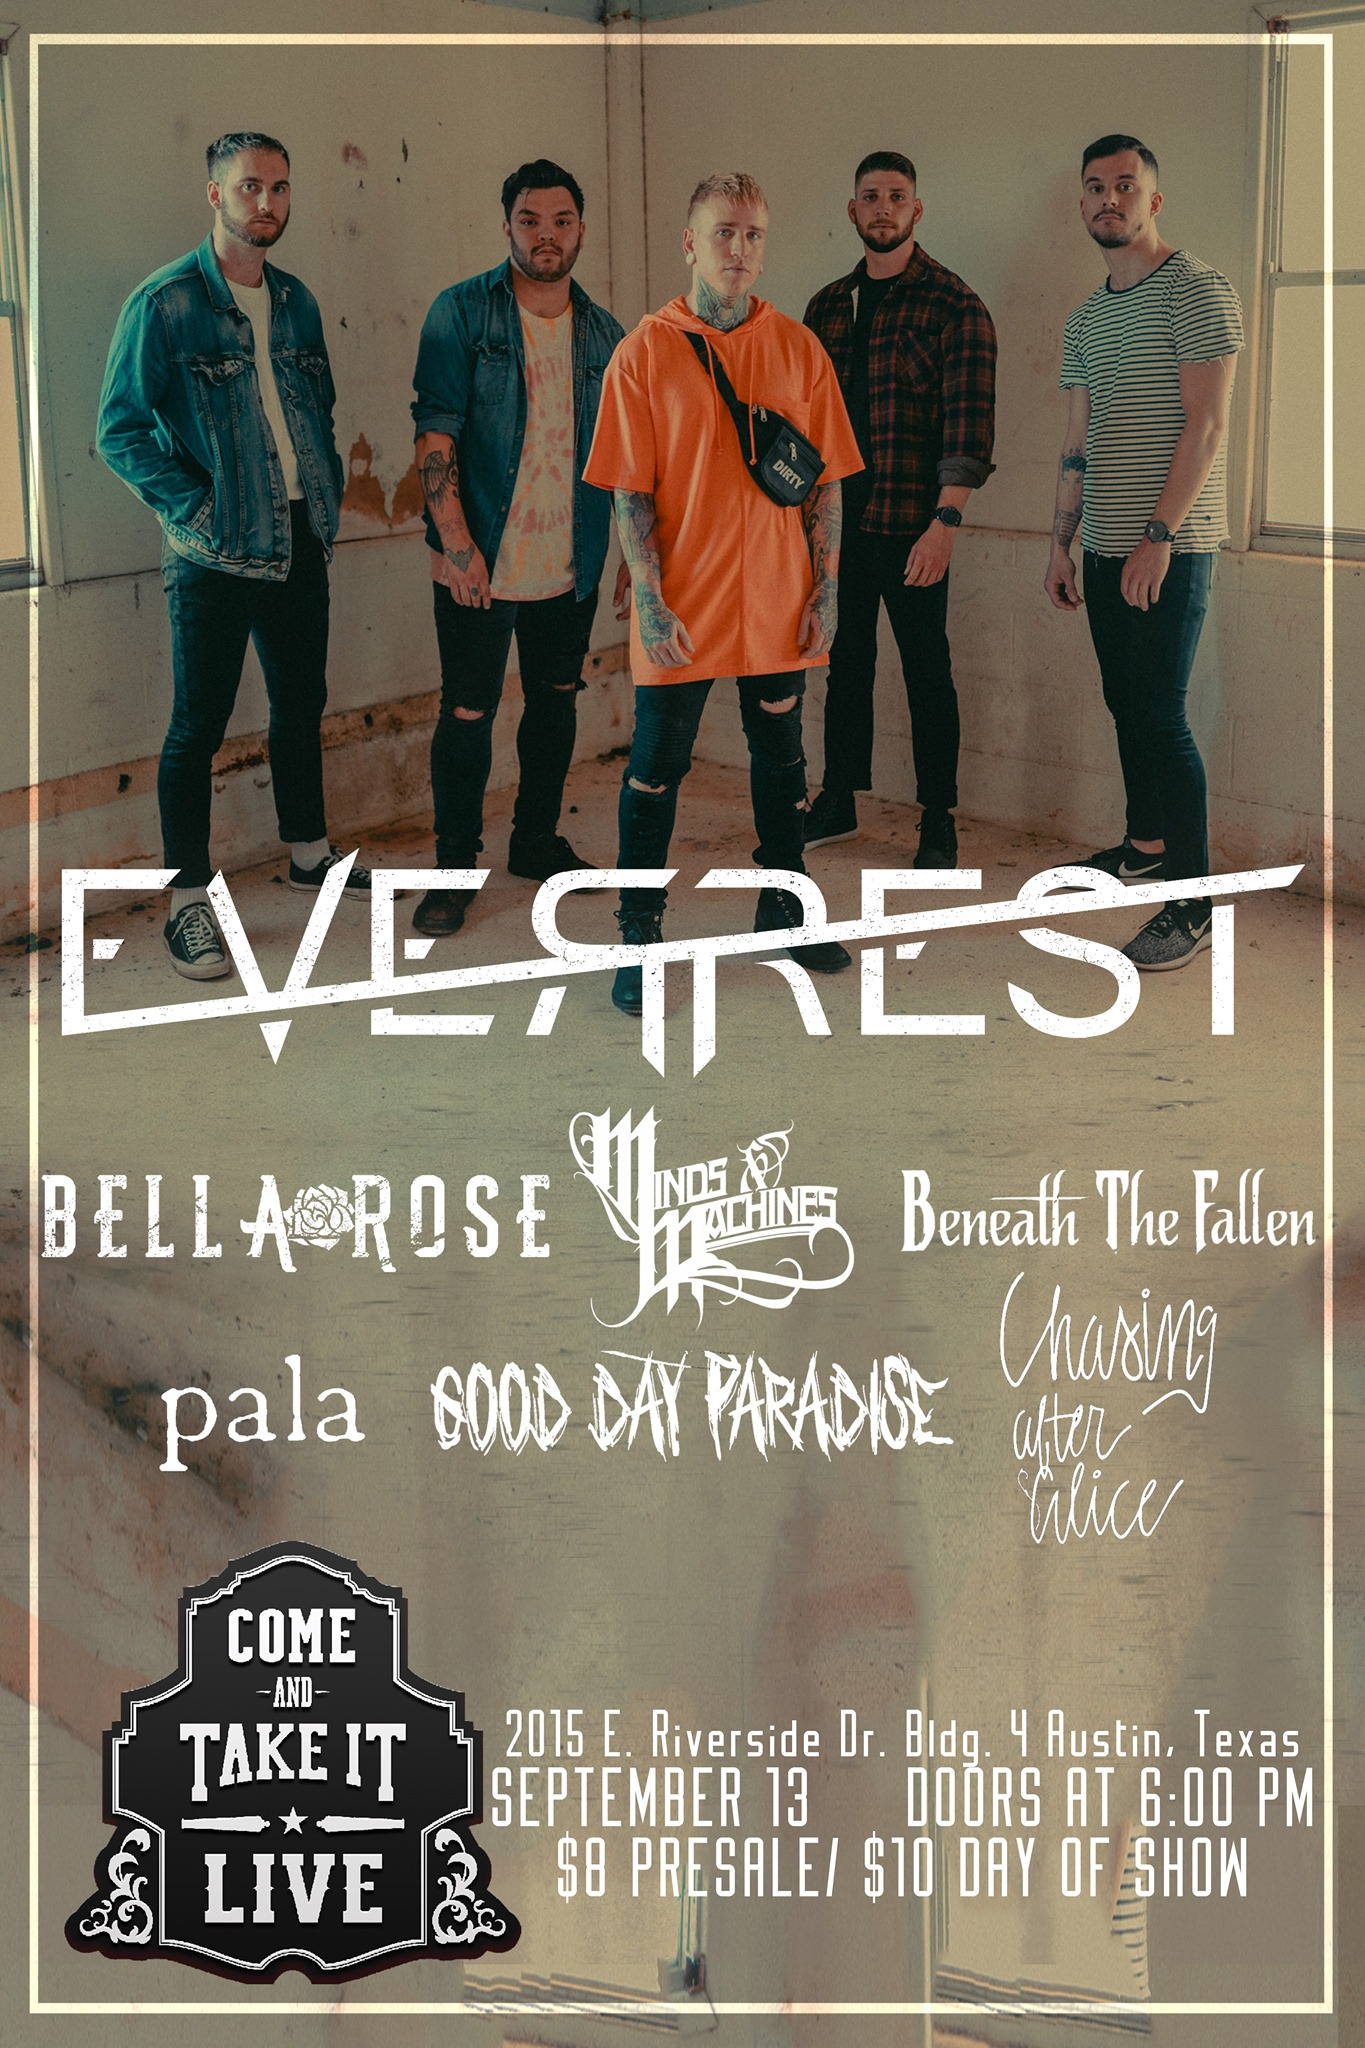 Everrest, Bella Rose, Minds & Machines and more